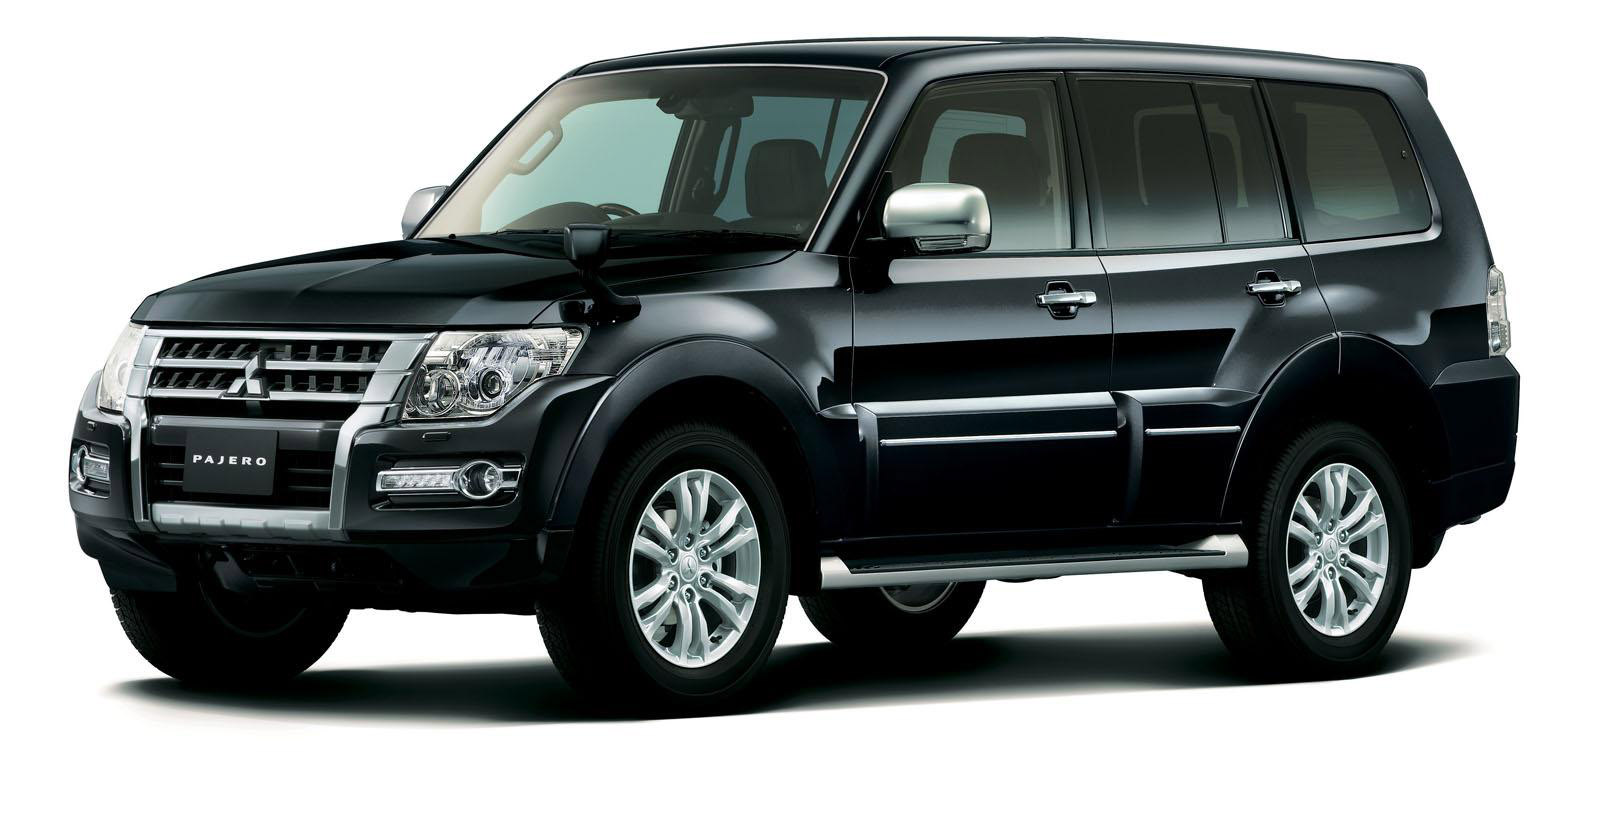 2015 mitsubishi pajero facelift. Black Bedroom Furniture Sets. Home Design Ideas